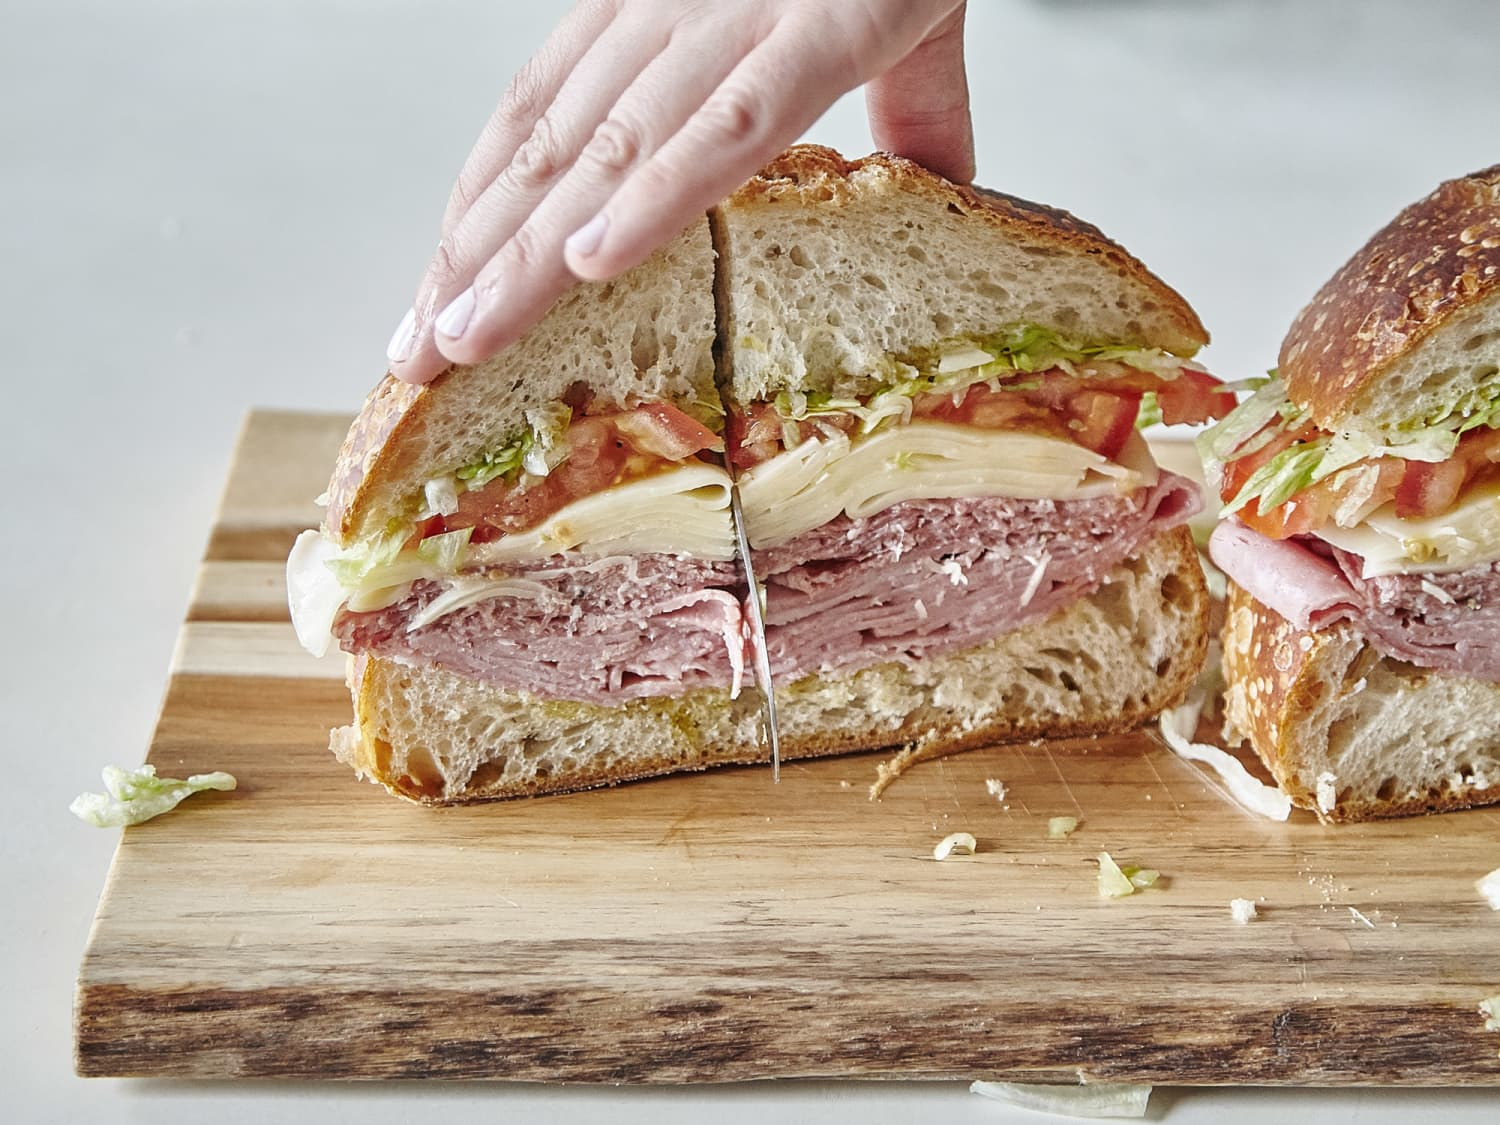 The Best Sandwich Tips, According to the Internet | Kitchn